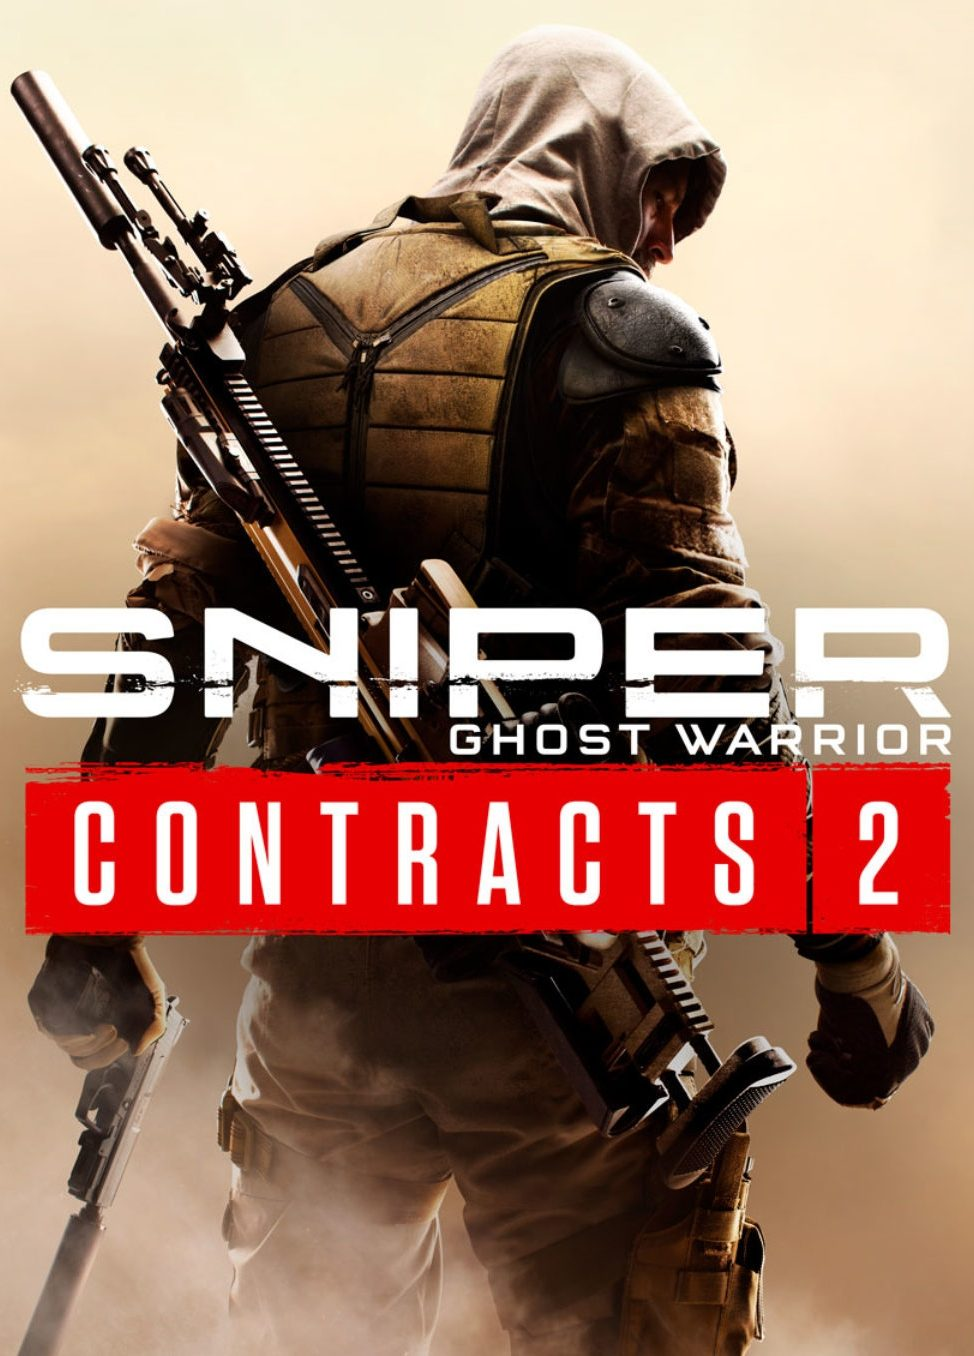 game-steam-sniper-ghost-warrior-contracts-2-cover-2564578